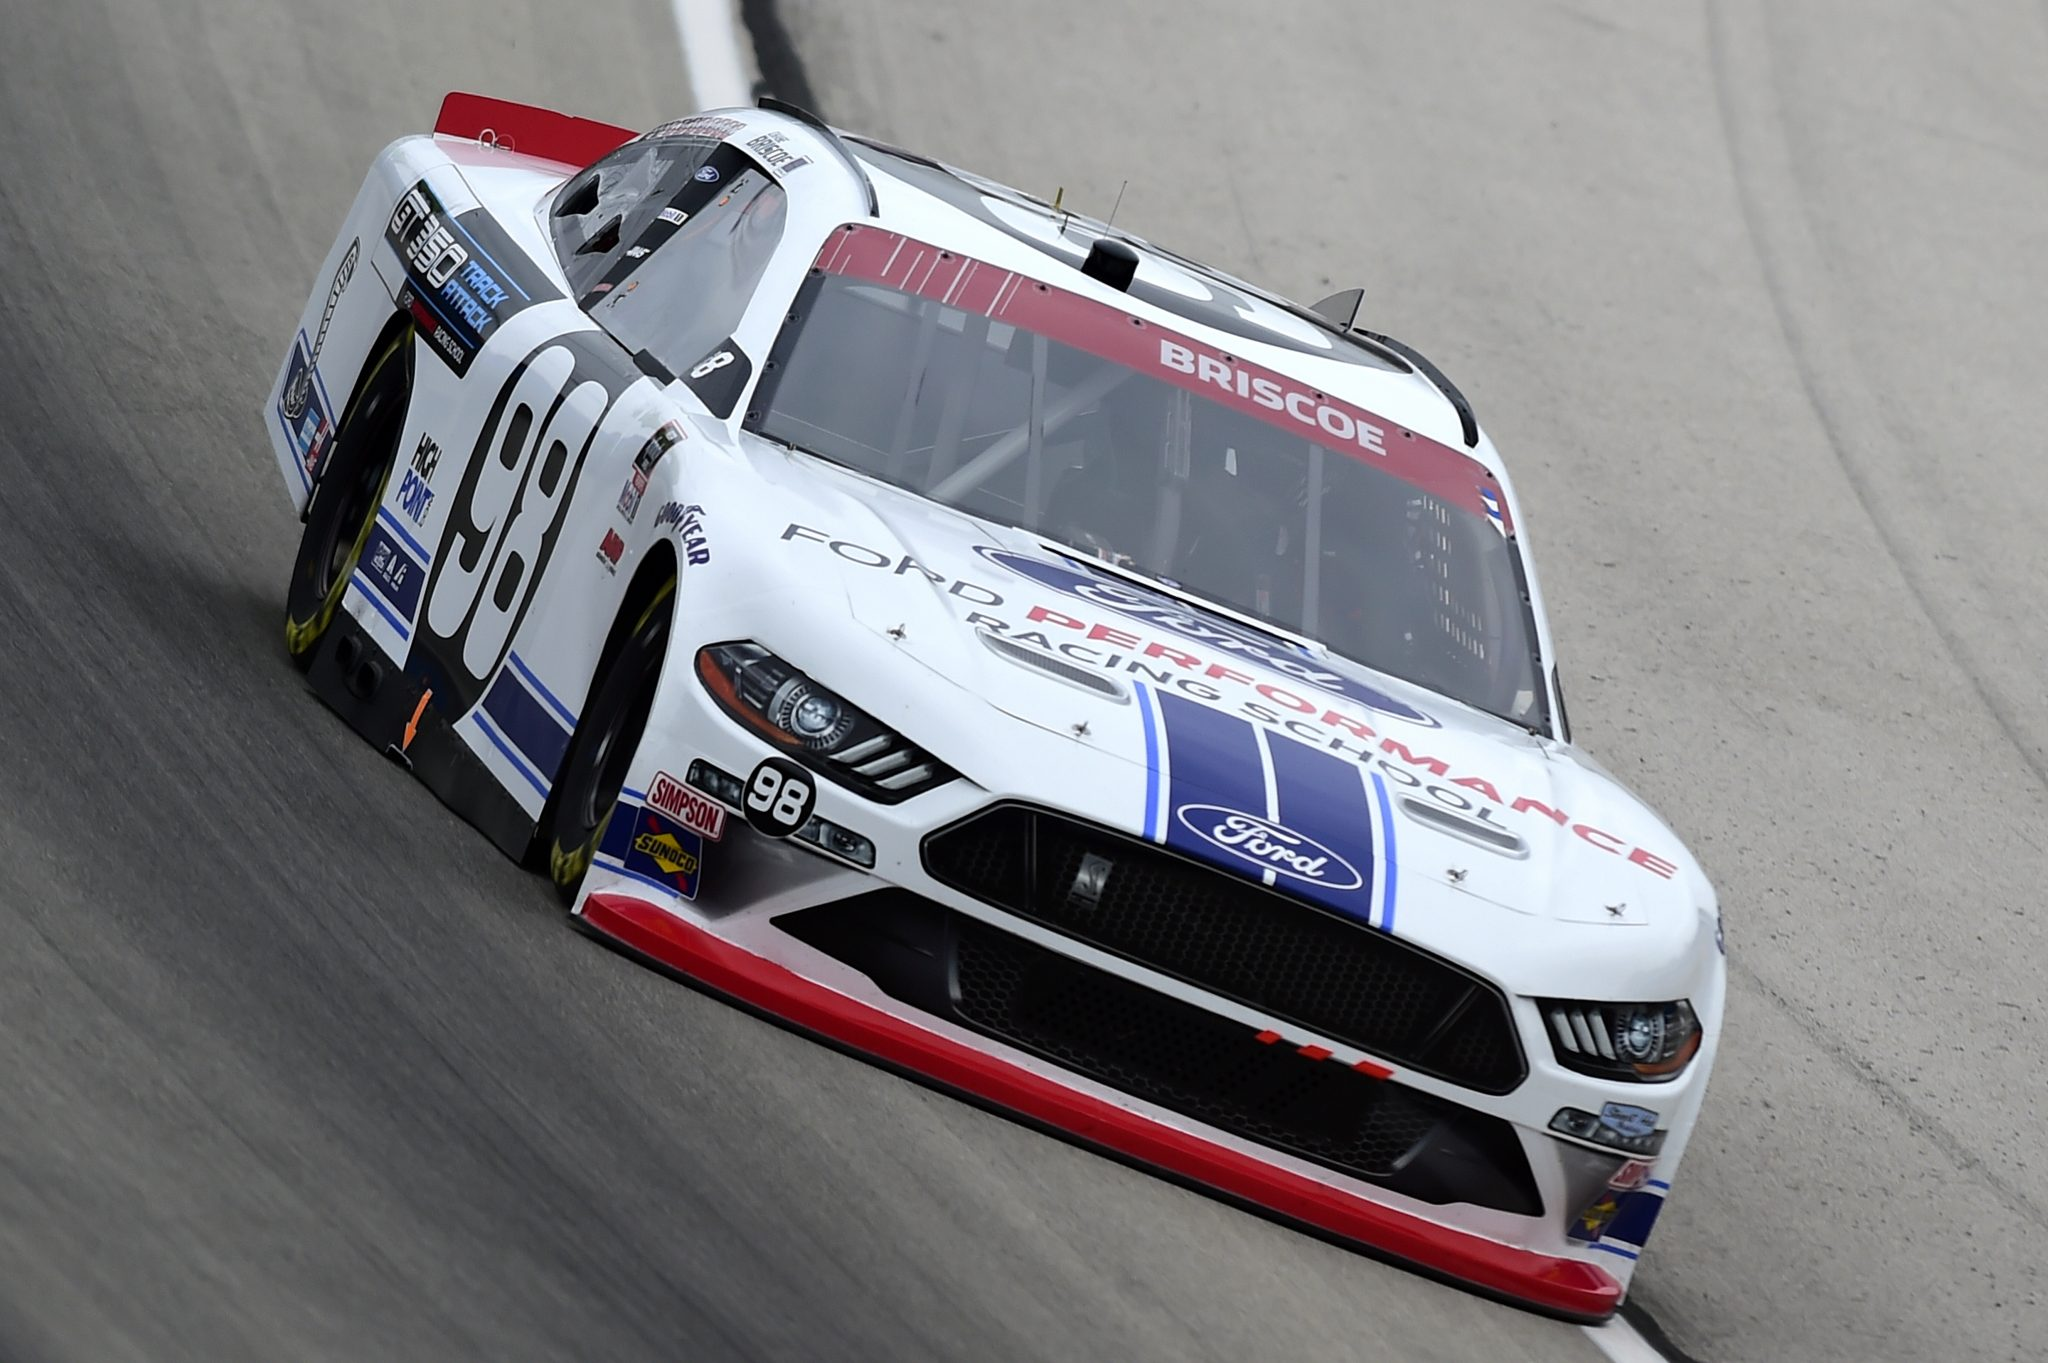 FORT WORTH, TEXAS - OCTOBER 24: Chase Briscoe, driver of the #98 Ford Performance Racing School Ford, drives during the NASCAR Xfinity Series O'Reilly Auto Parts 300 at Texas Motor Speedway on October 24, 2020 in Fort Worth, Texas. (Photo by Jared C. Tilton/Getty Images) | Getty Images